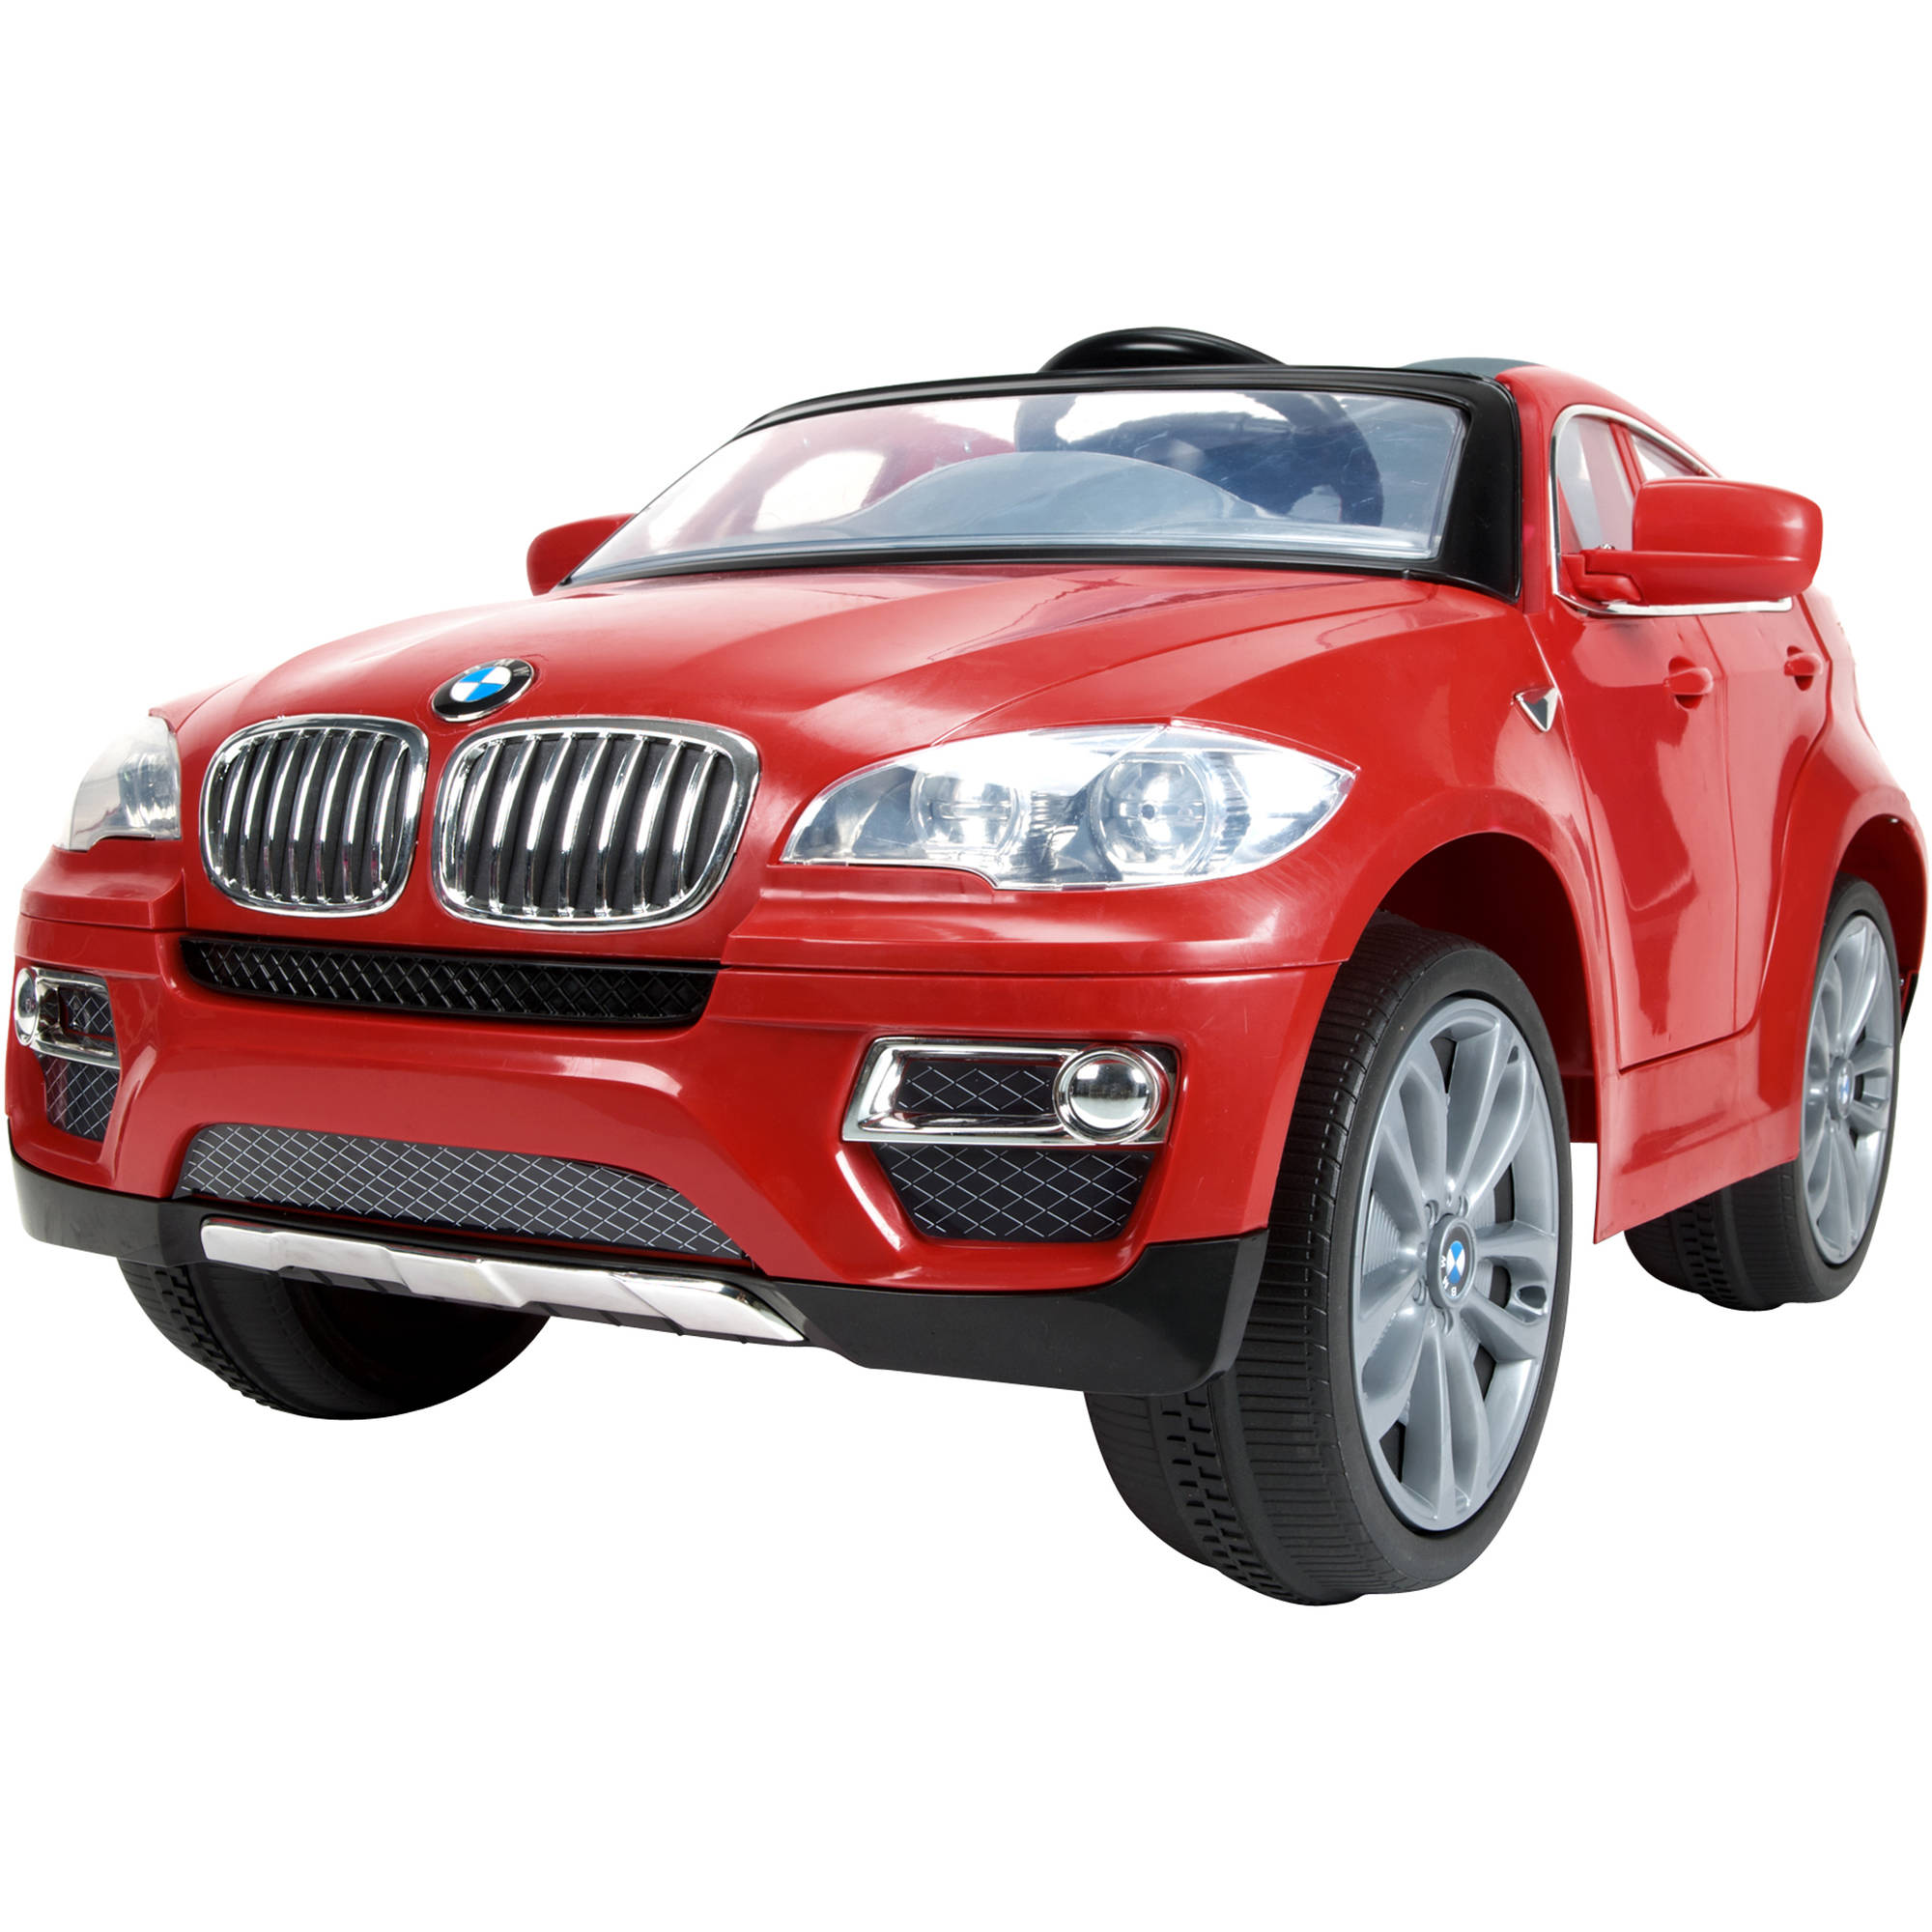 bmw x6 6-volt battery-powered ride-on toy carhuffy® - walmart